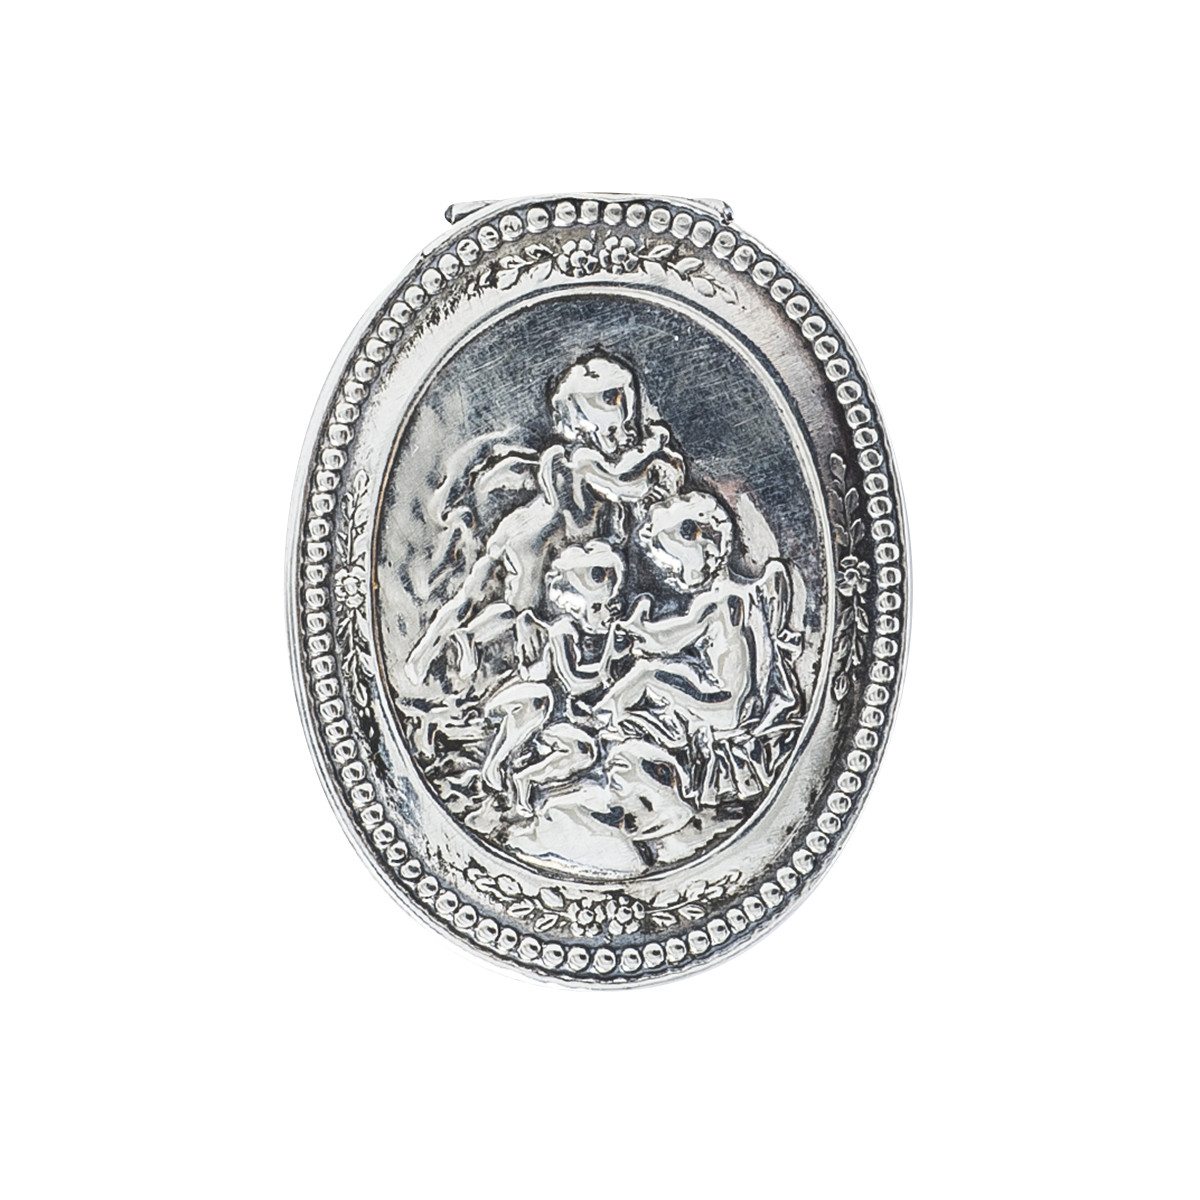 Antique Repousse Cherub Pill Box